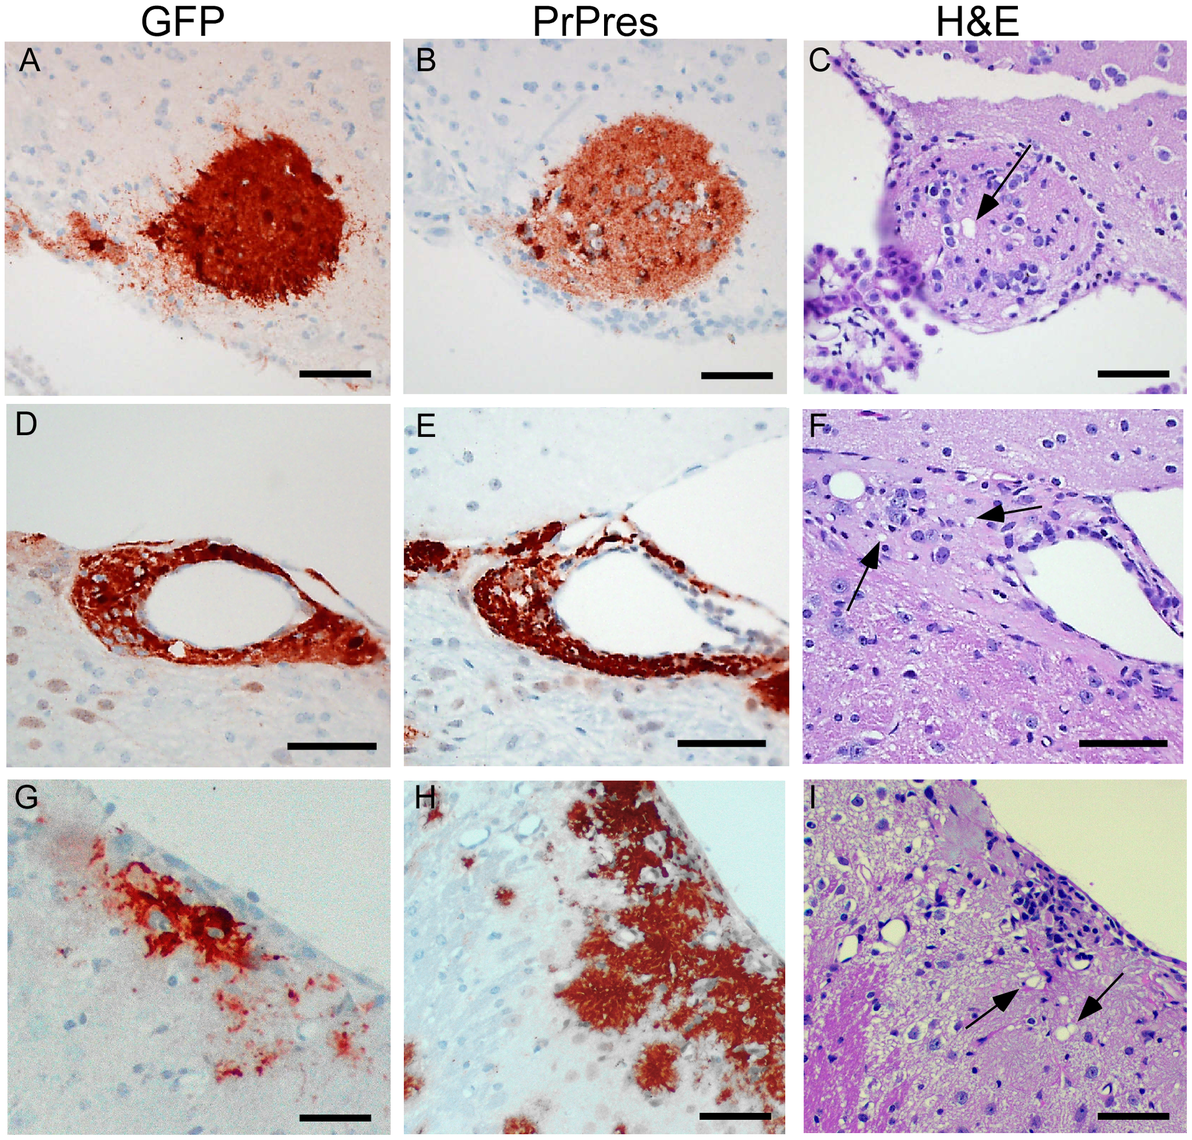 Detection of PrPres and vacuolation in brain tissue of PrPnull and tg44+/− mice with C57BL/6 brain grafts.